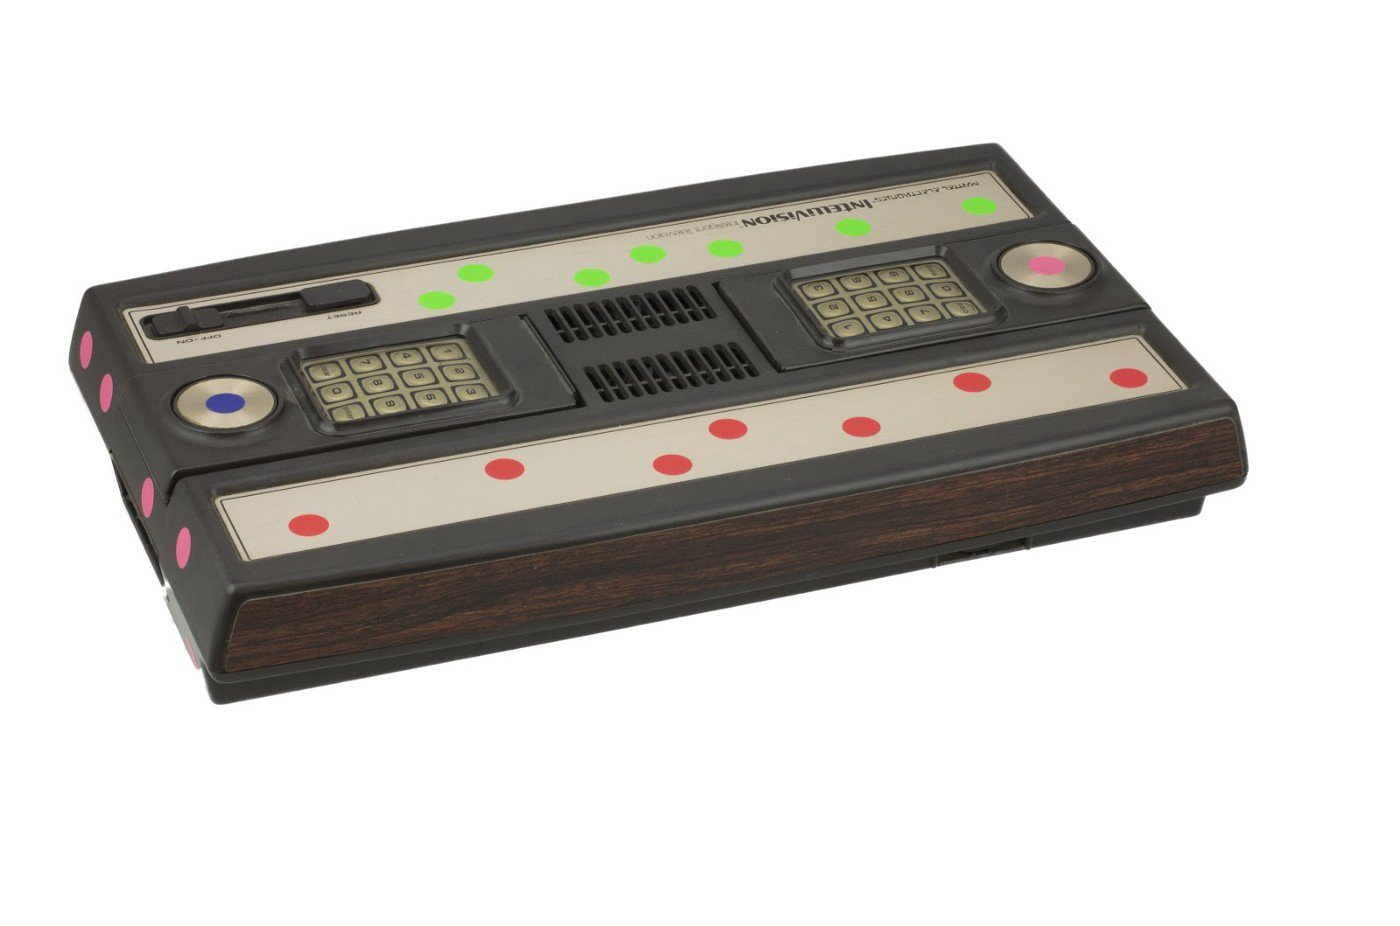 Mattel Intellivision with removable coloured stickers to assist with processing